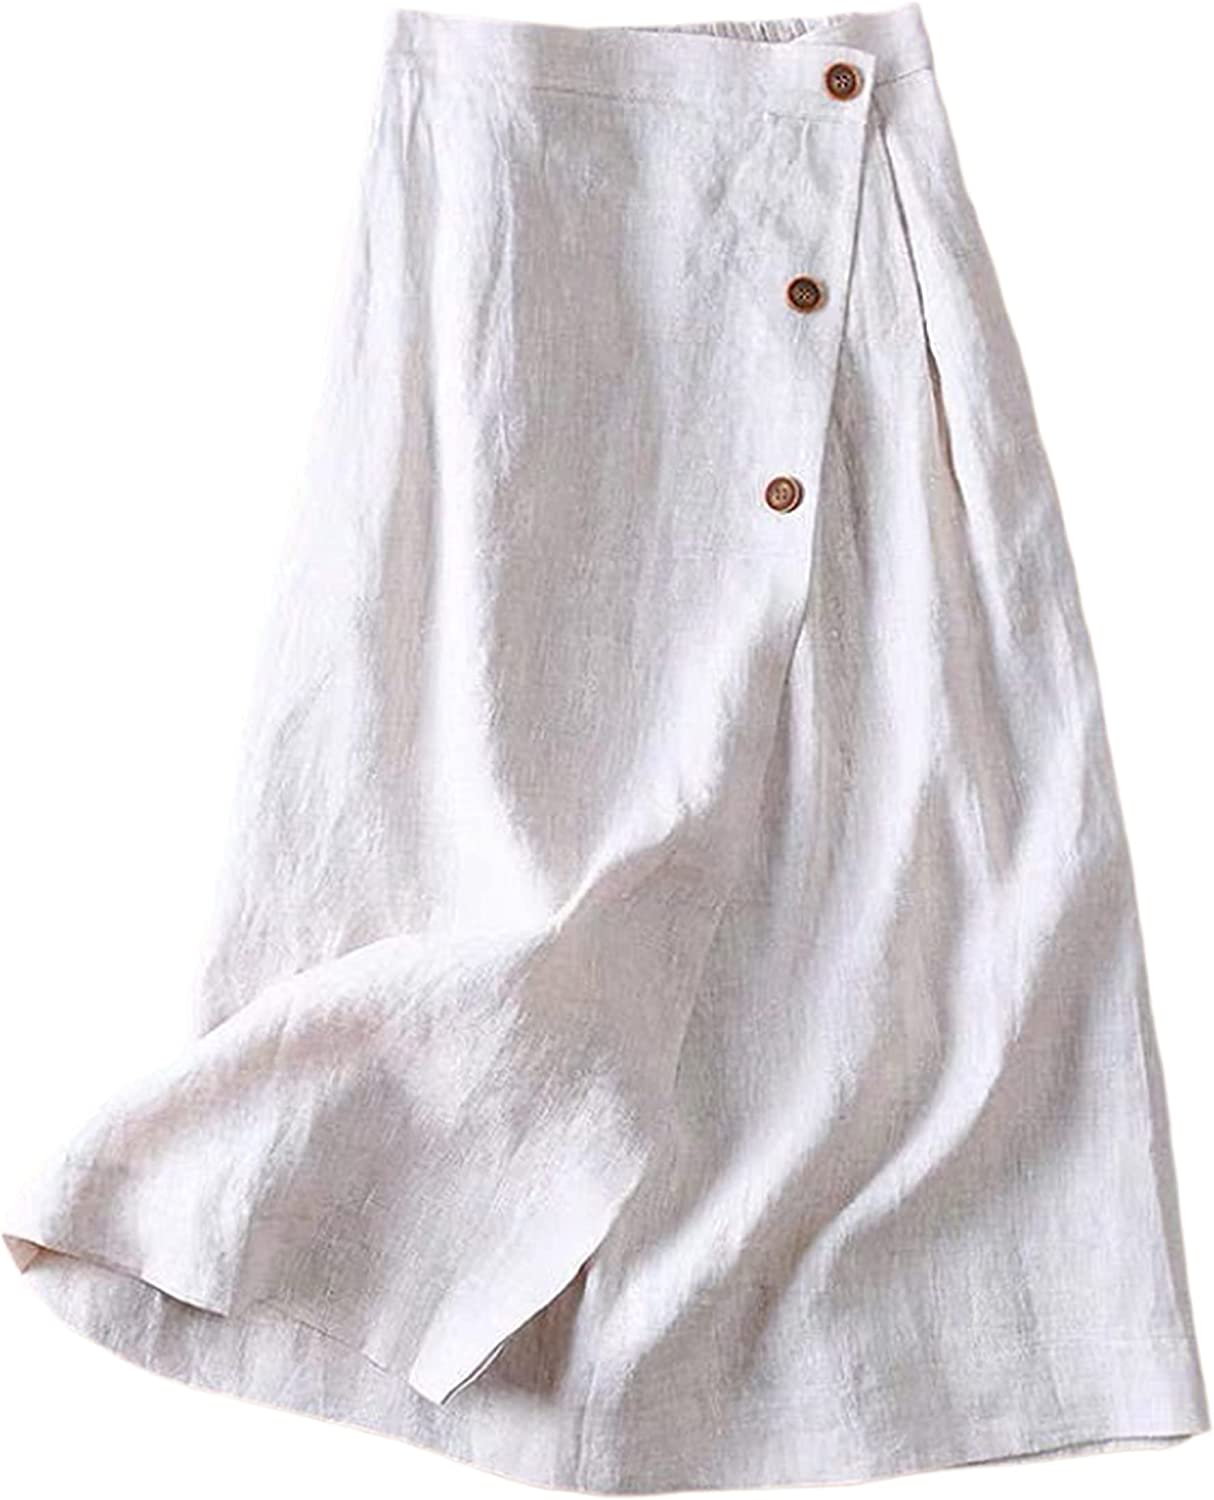 Yimoon Women's Casual Relaxed Cotton Linen Button A-Line Flared Midi Skirts